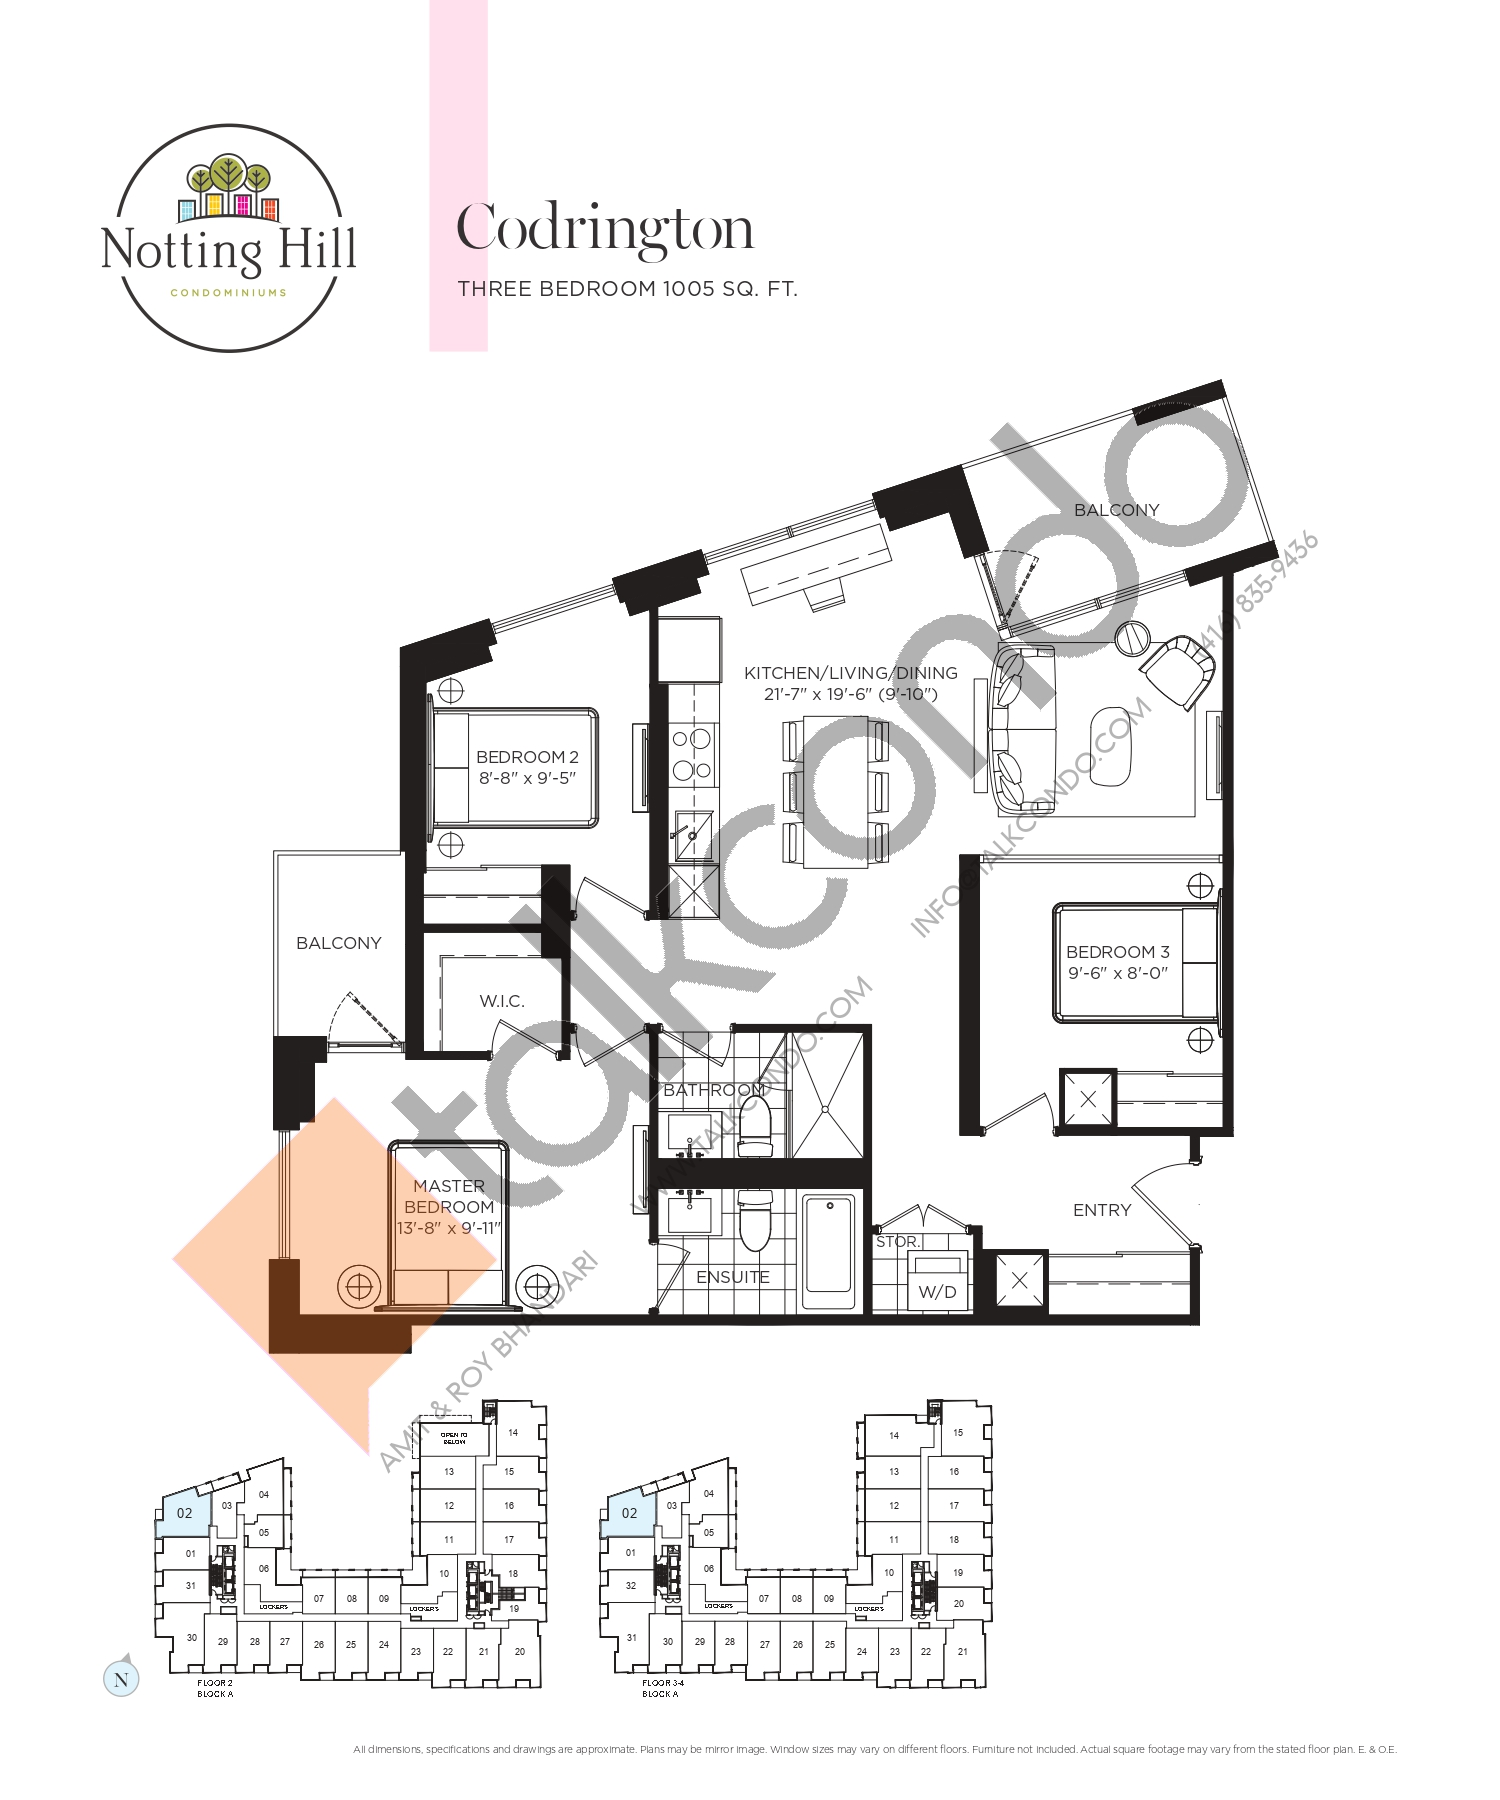 Codrington Floor Plan at Notting Hill Phase 2 Condos - 1005 sq.ft